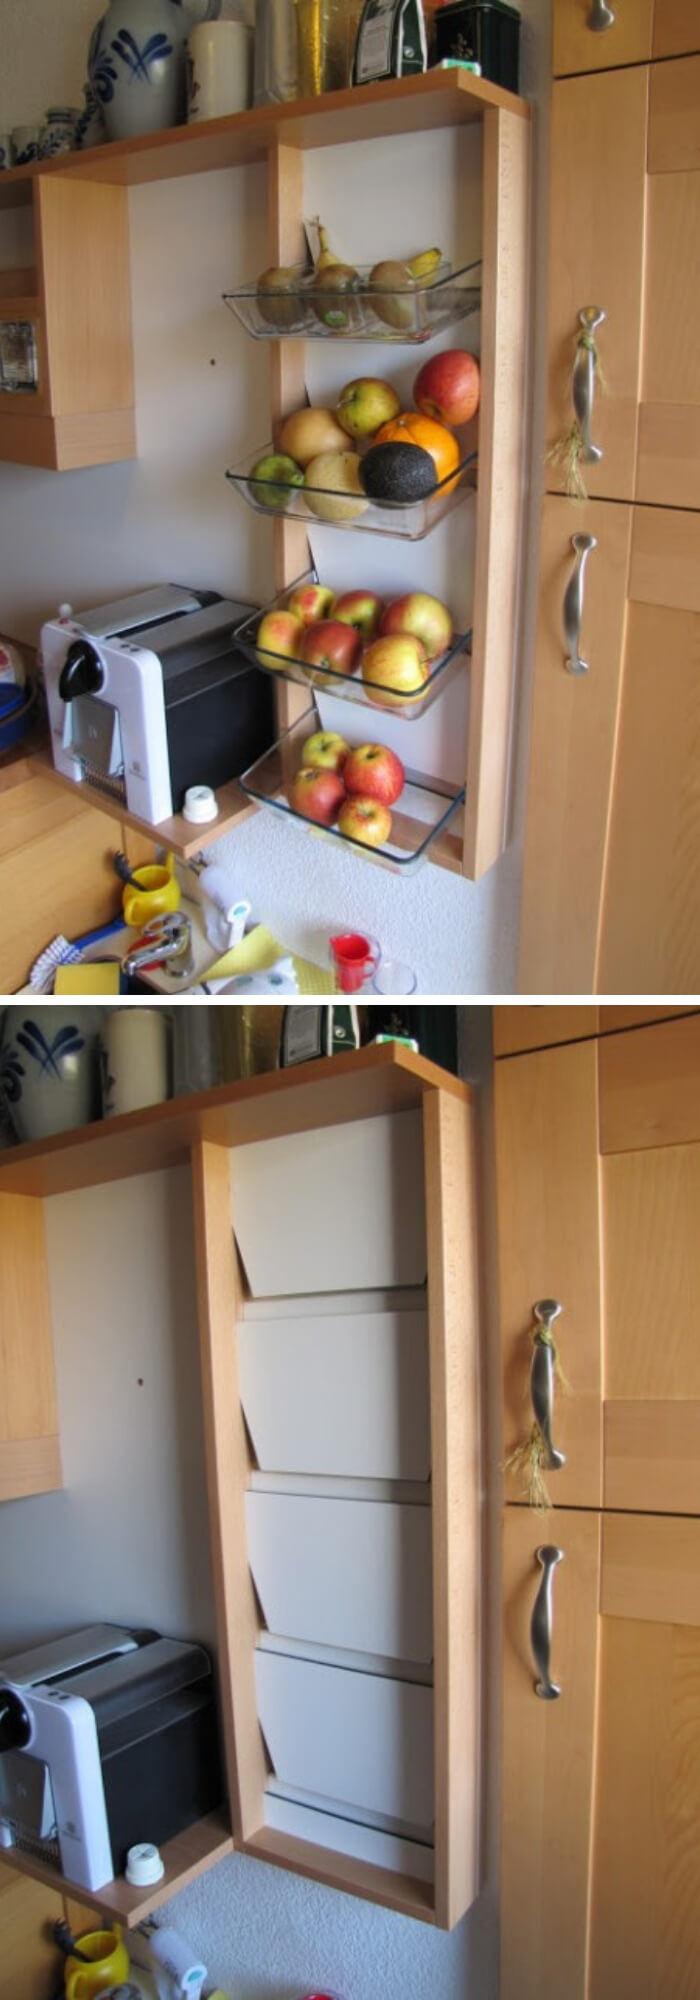 Fruit Shelf | Best Fruit and Vegetable Storage Ideas For Your Kitchen